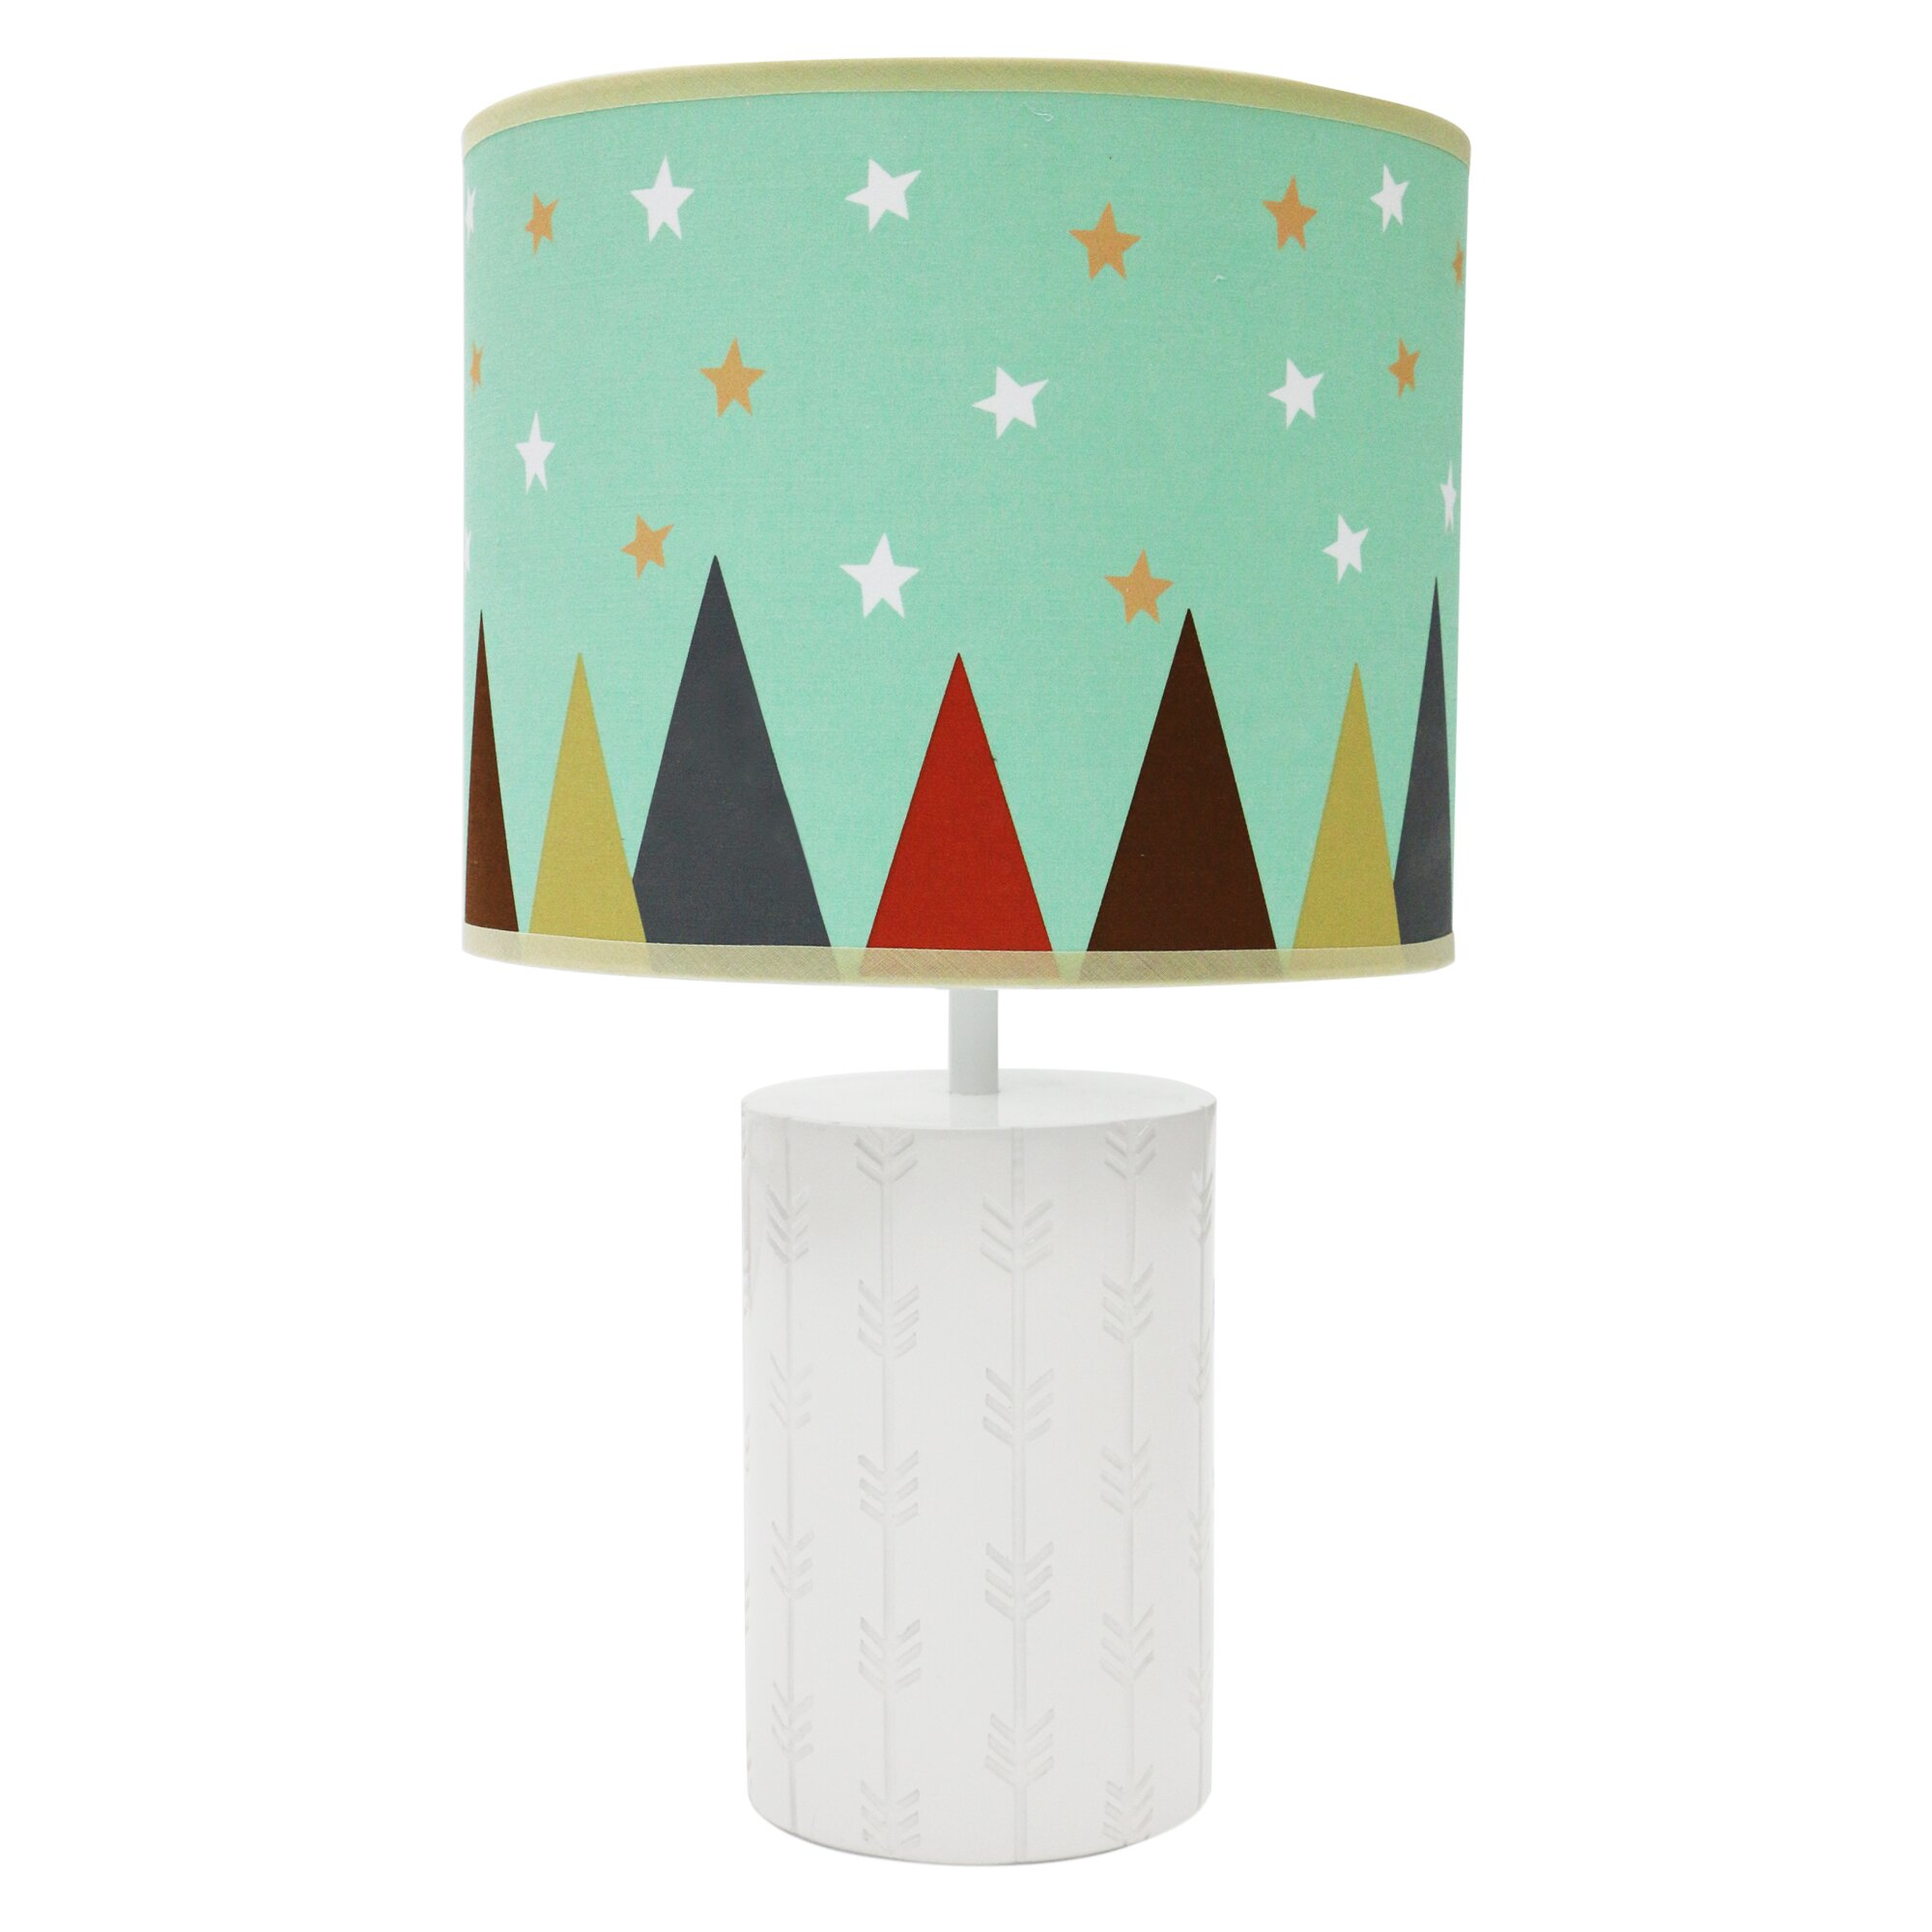 "Clever Fox: Little Haven Clever Fox 18"" Table Lamp & Reviews"